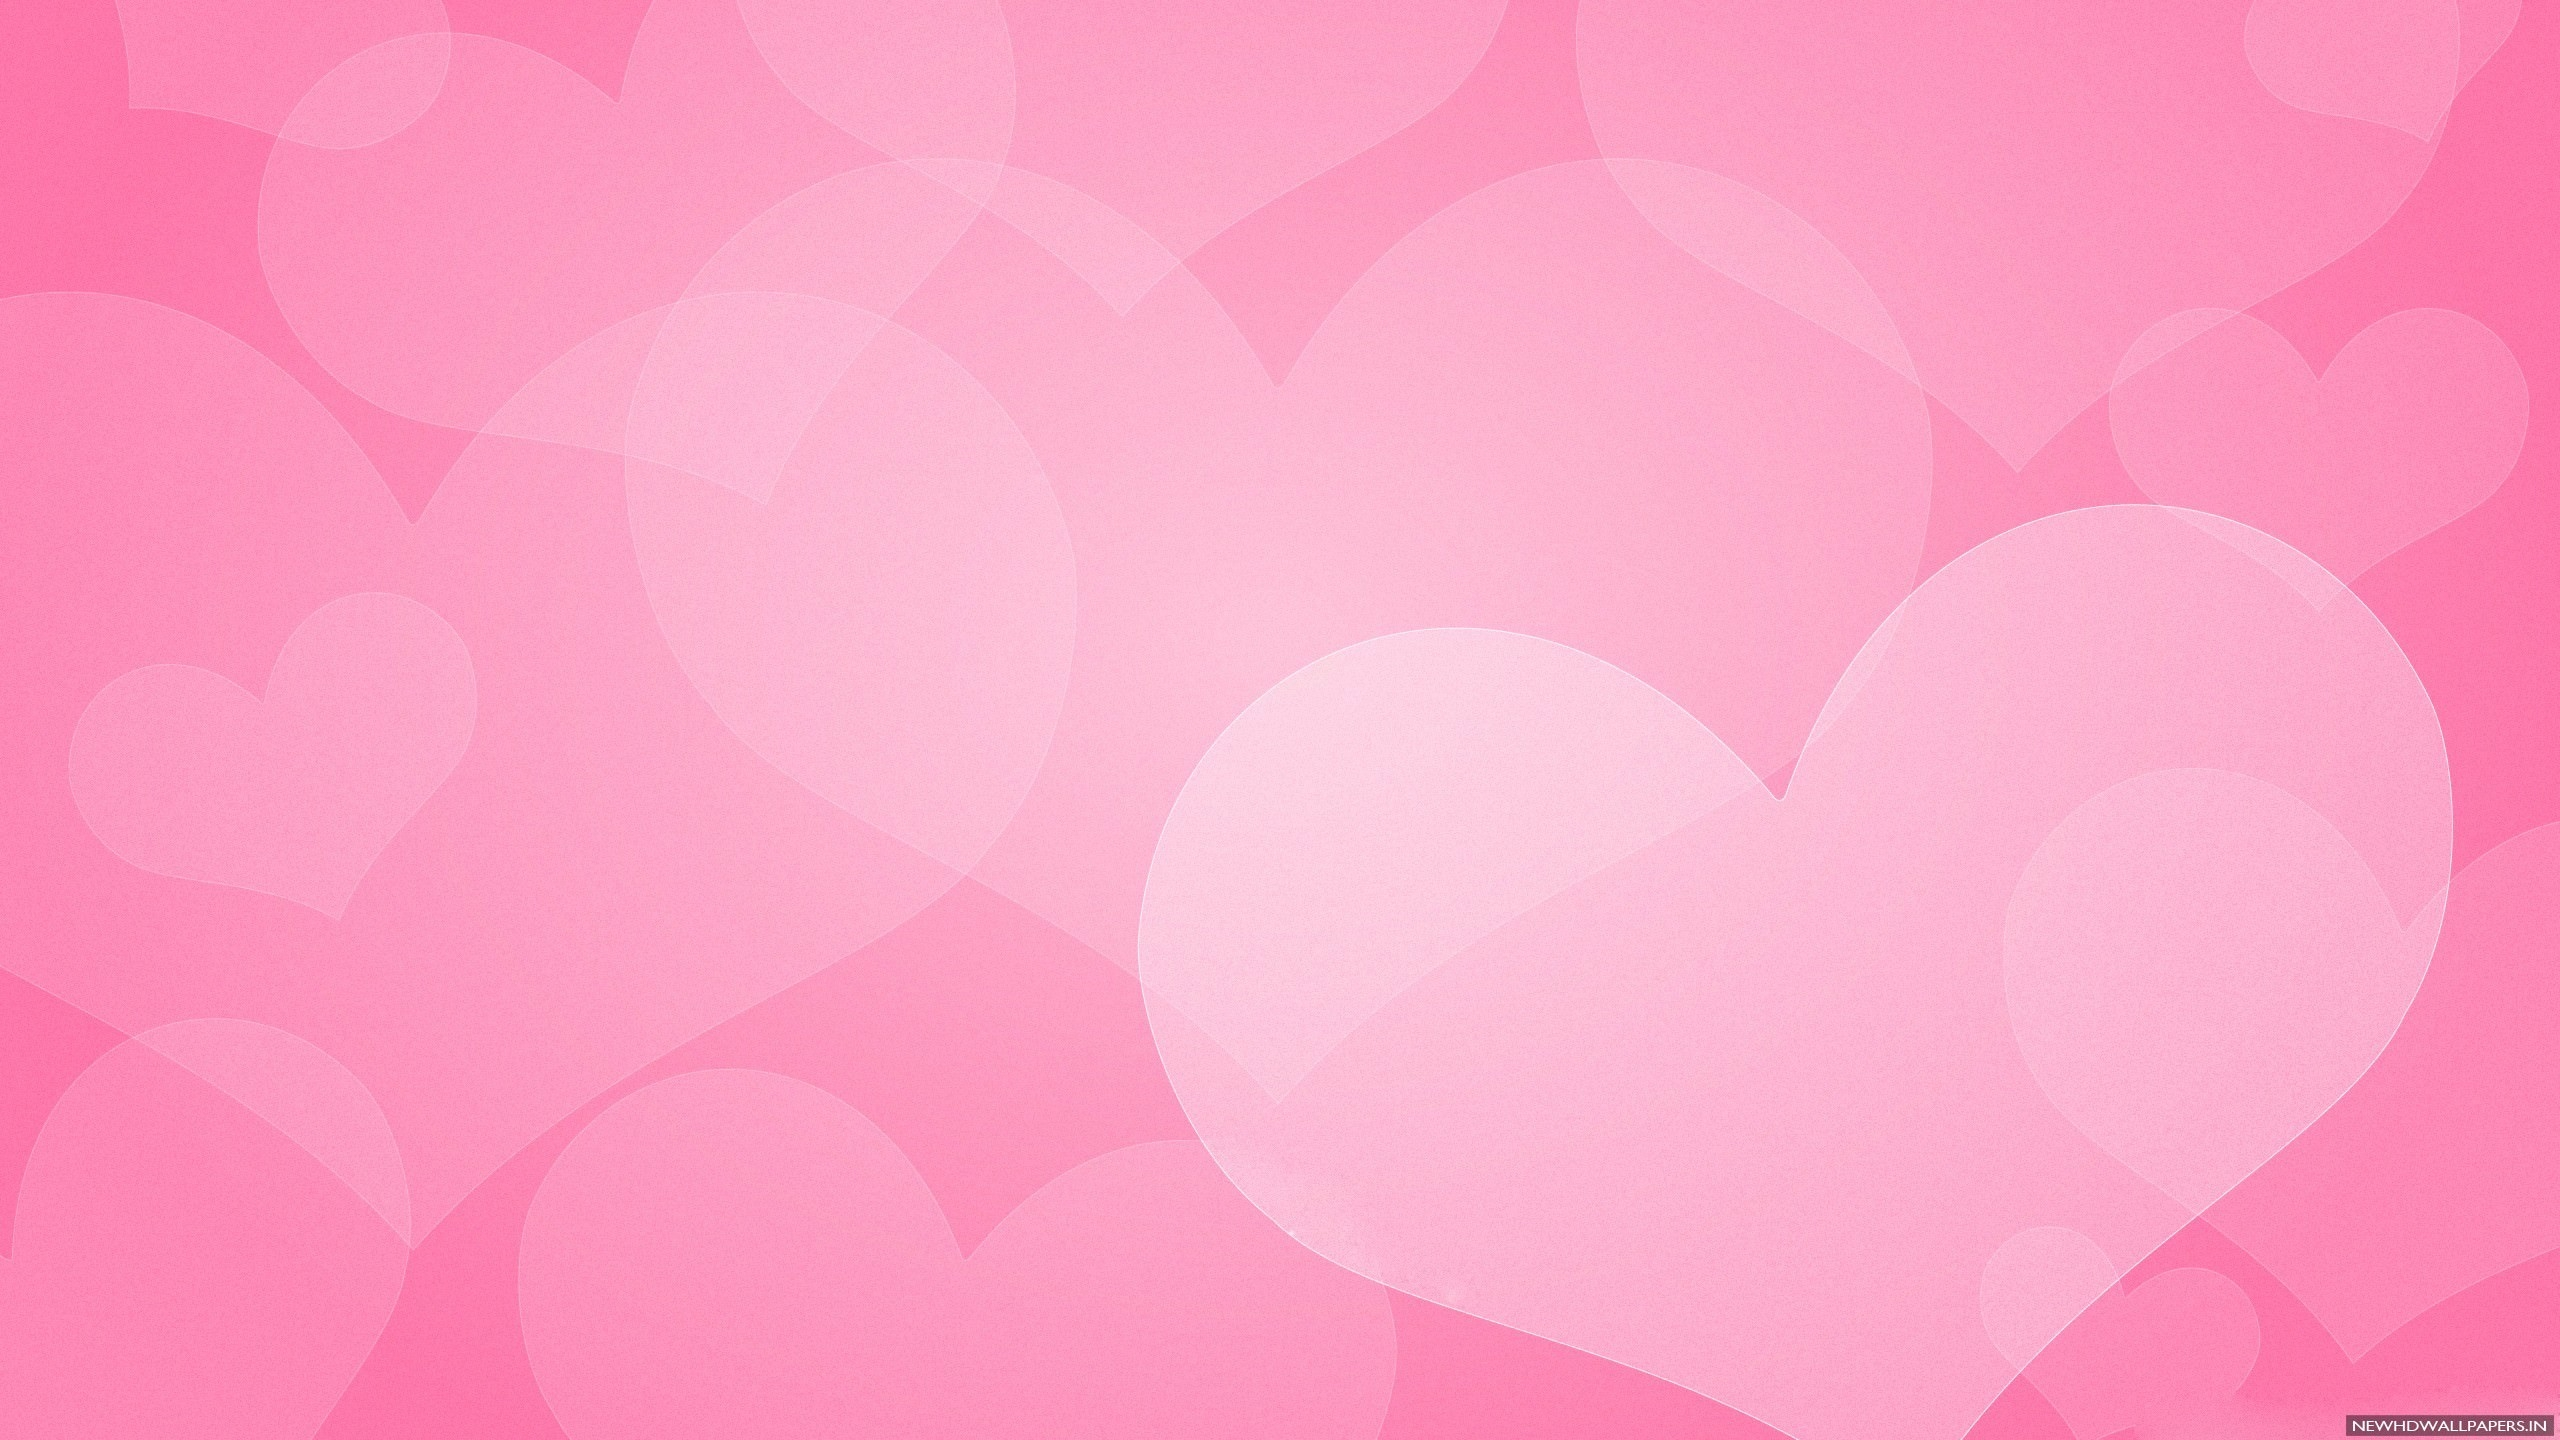 21+ Plain Backgrounds, Wallpapers, Images, Pictures ...